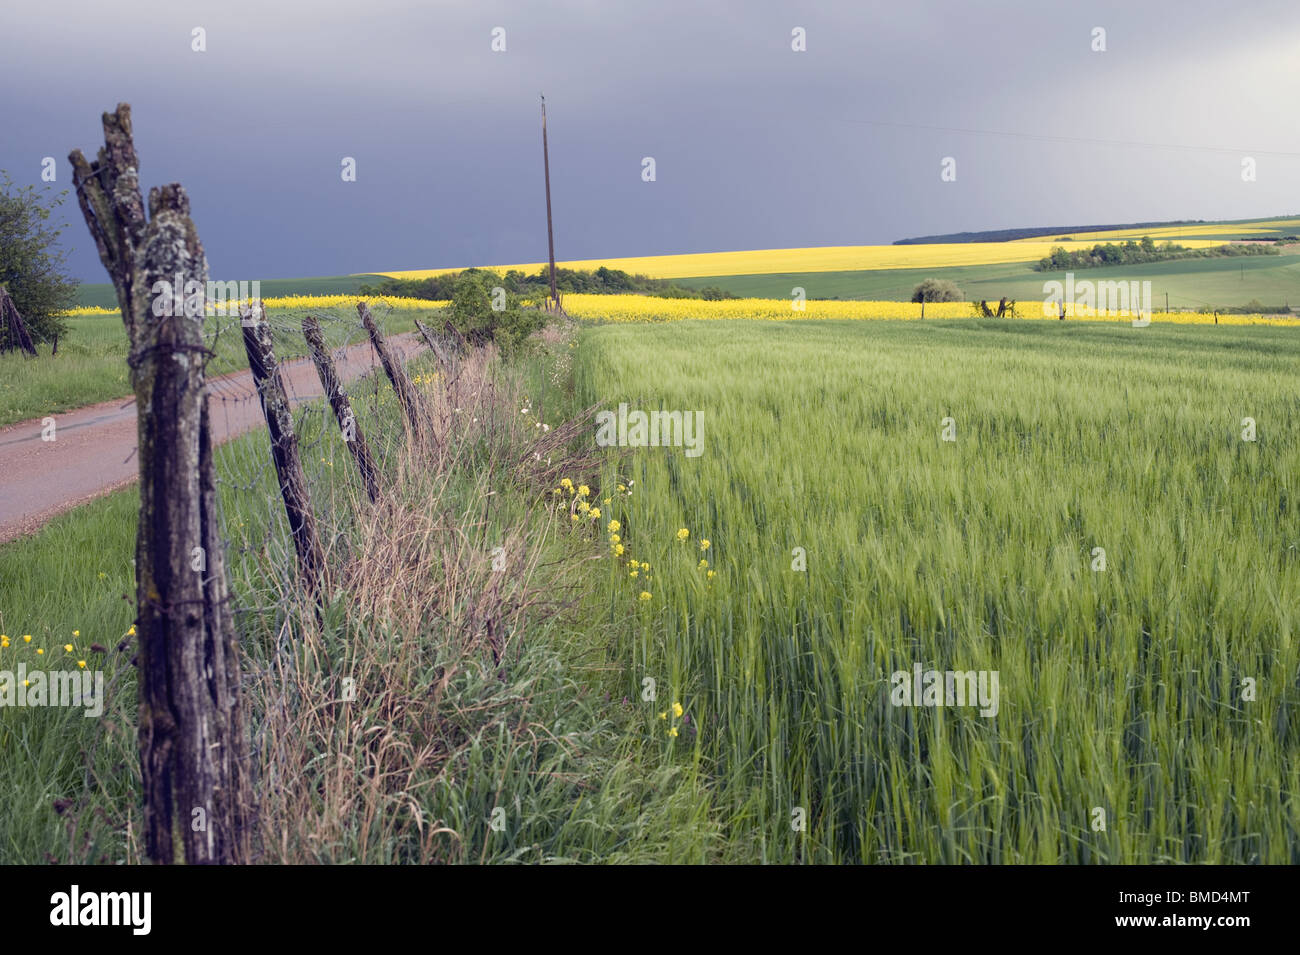 Paysage de campagne, Barriere, verdure nuages Photo Stock